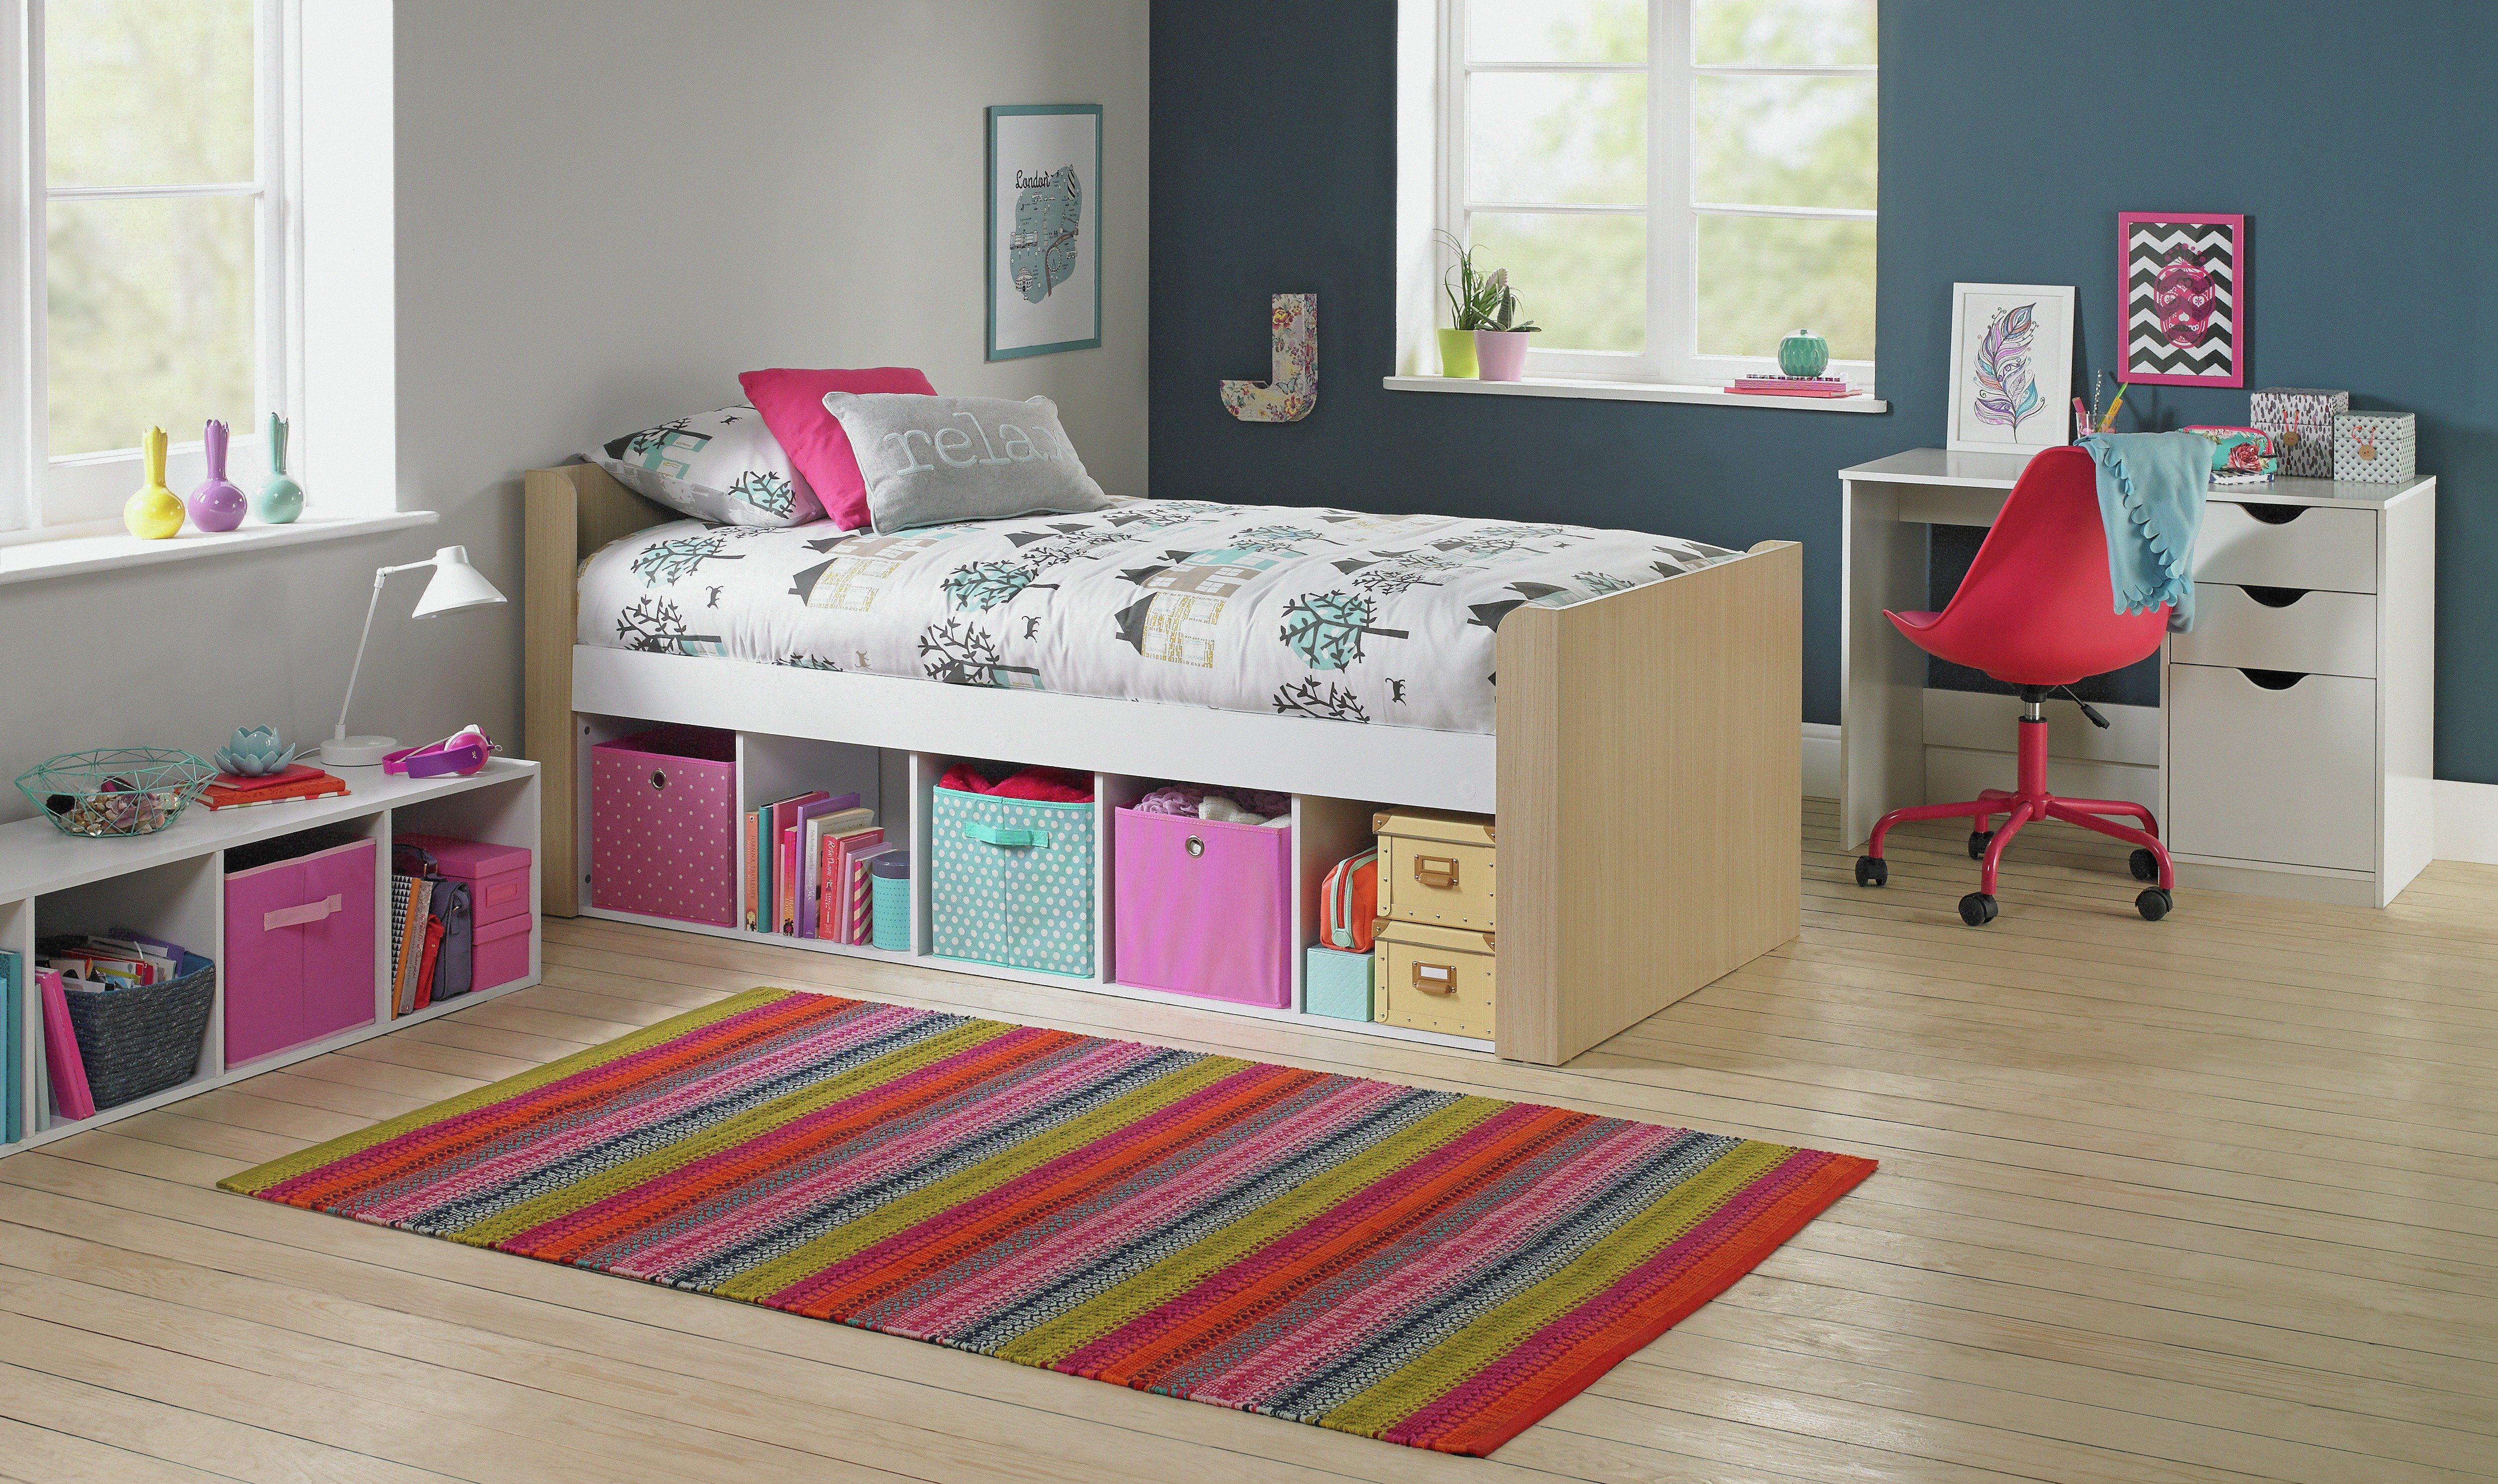 Cabin beds furniture sales today for Furniture sales today